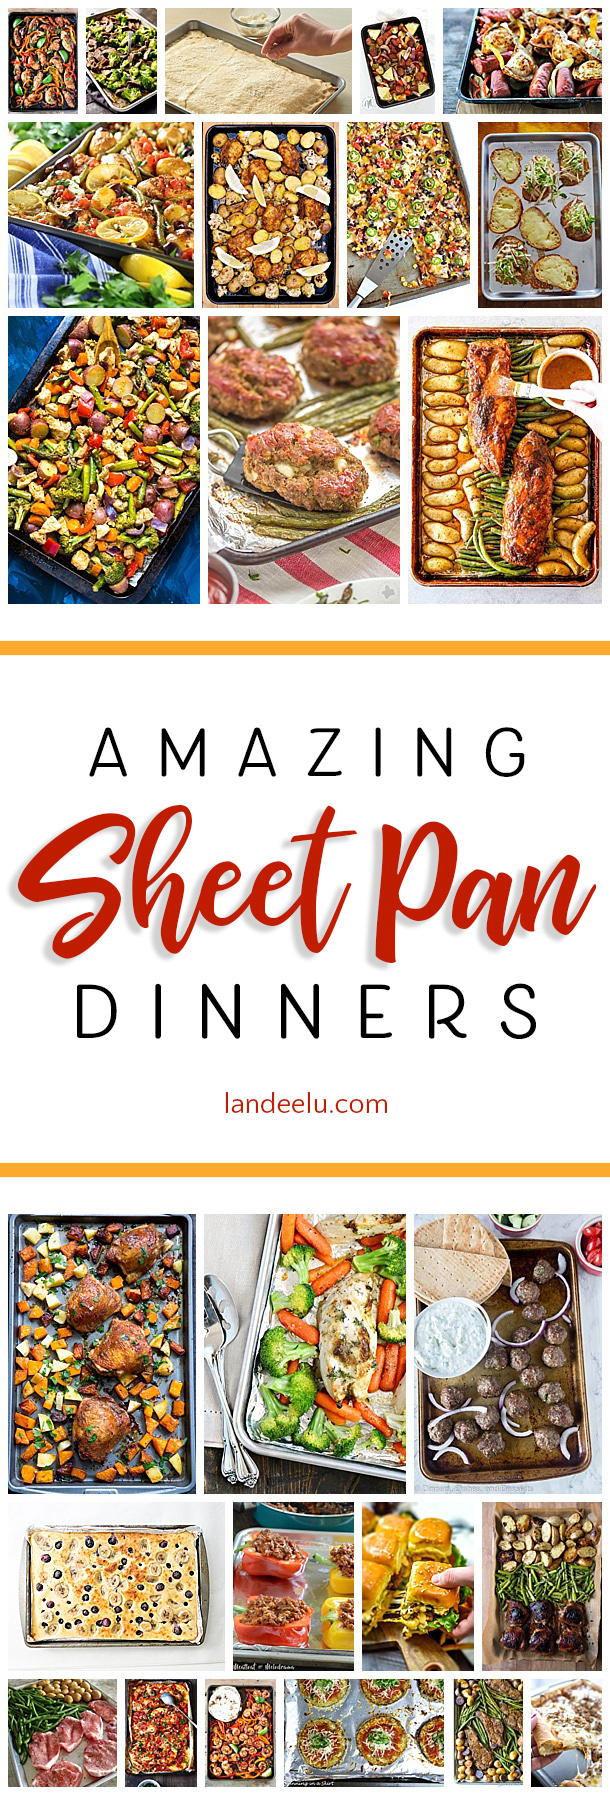 Looking for easy dinner ideas? Check out these awesome sheetpan dinners! Throw some veggies and some protein on a cookie sheet and enjoy! #sheetpandinners #sheetpansuppers #easydinnerideas #quickdinnerideas #healthydinnerideas #dinner #sheetpanrecipes